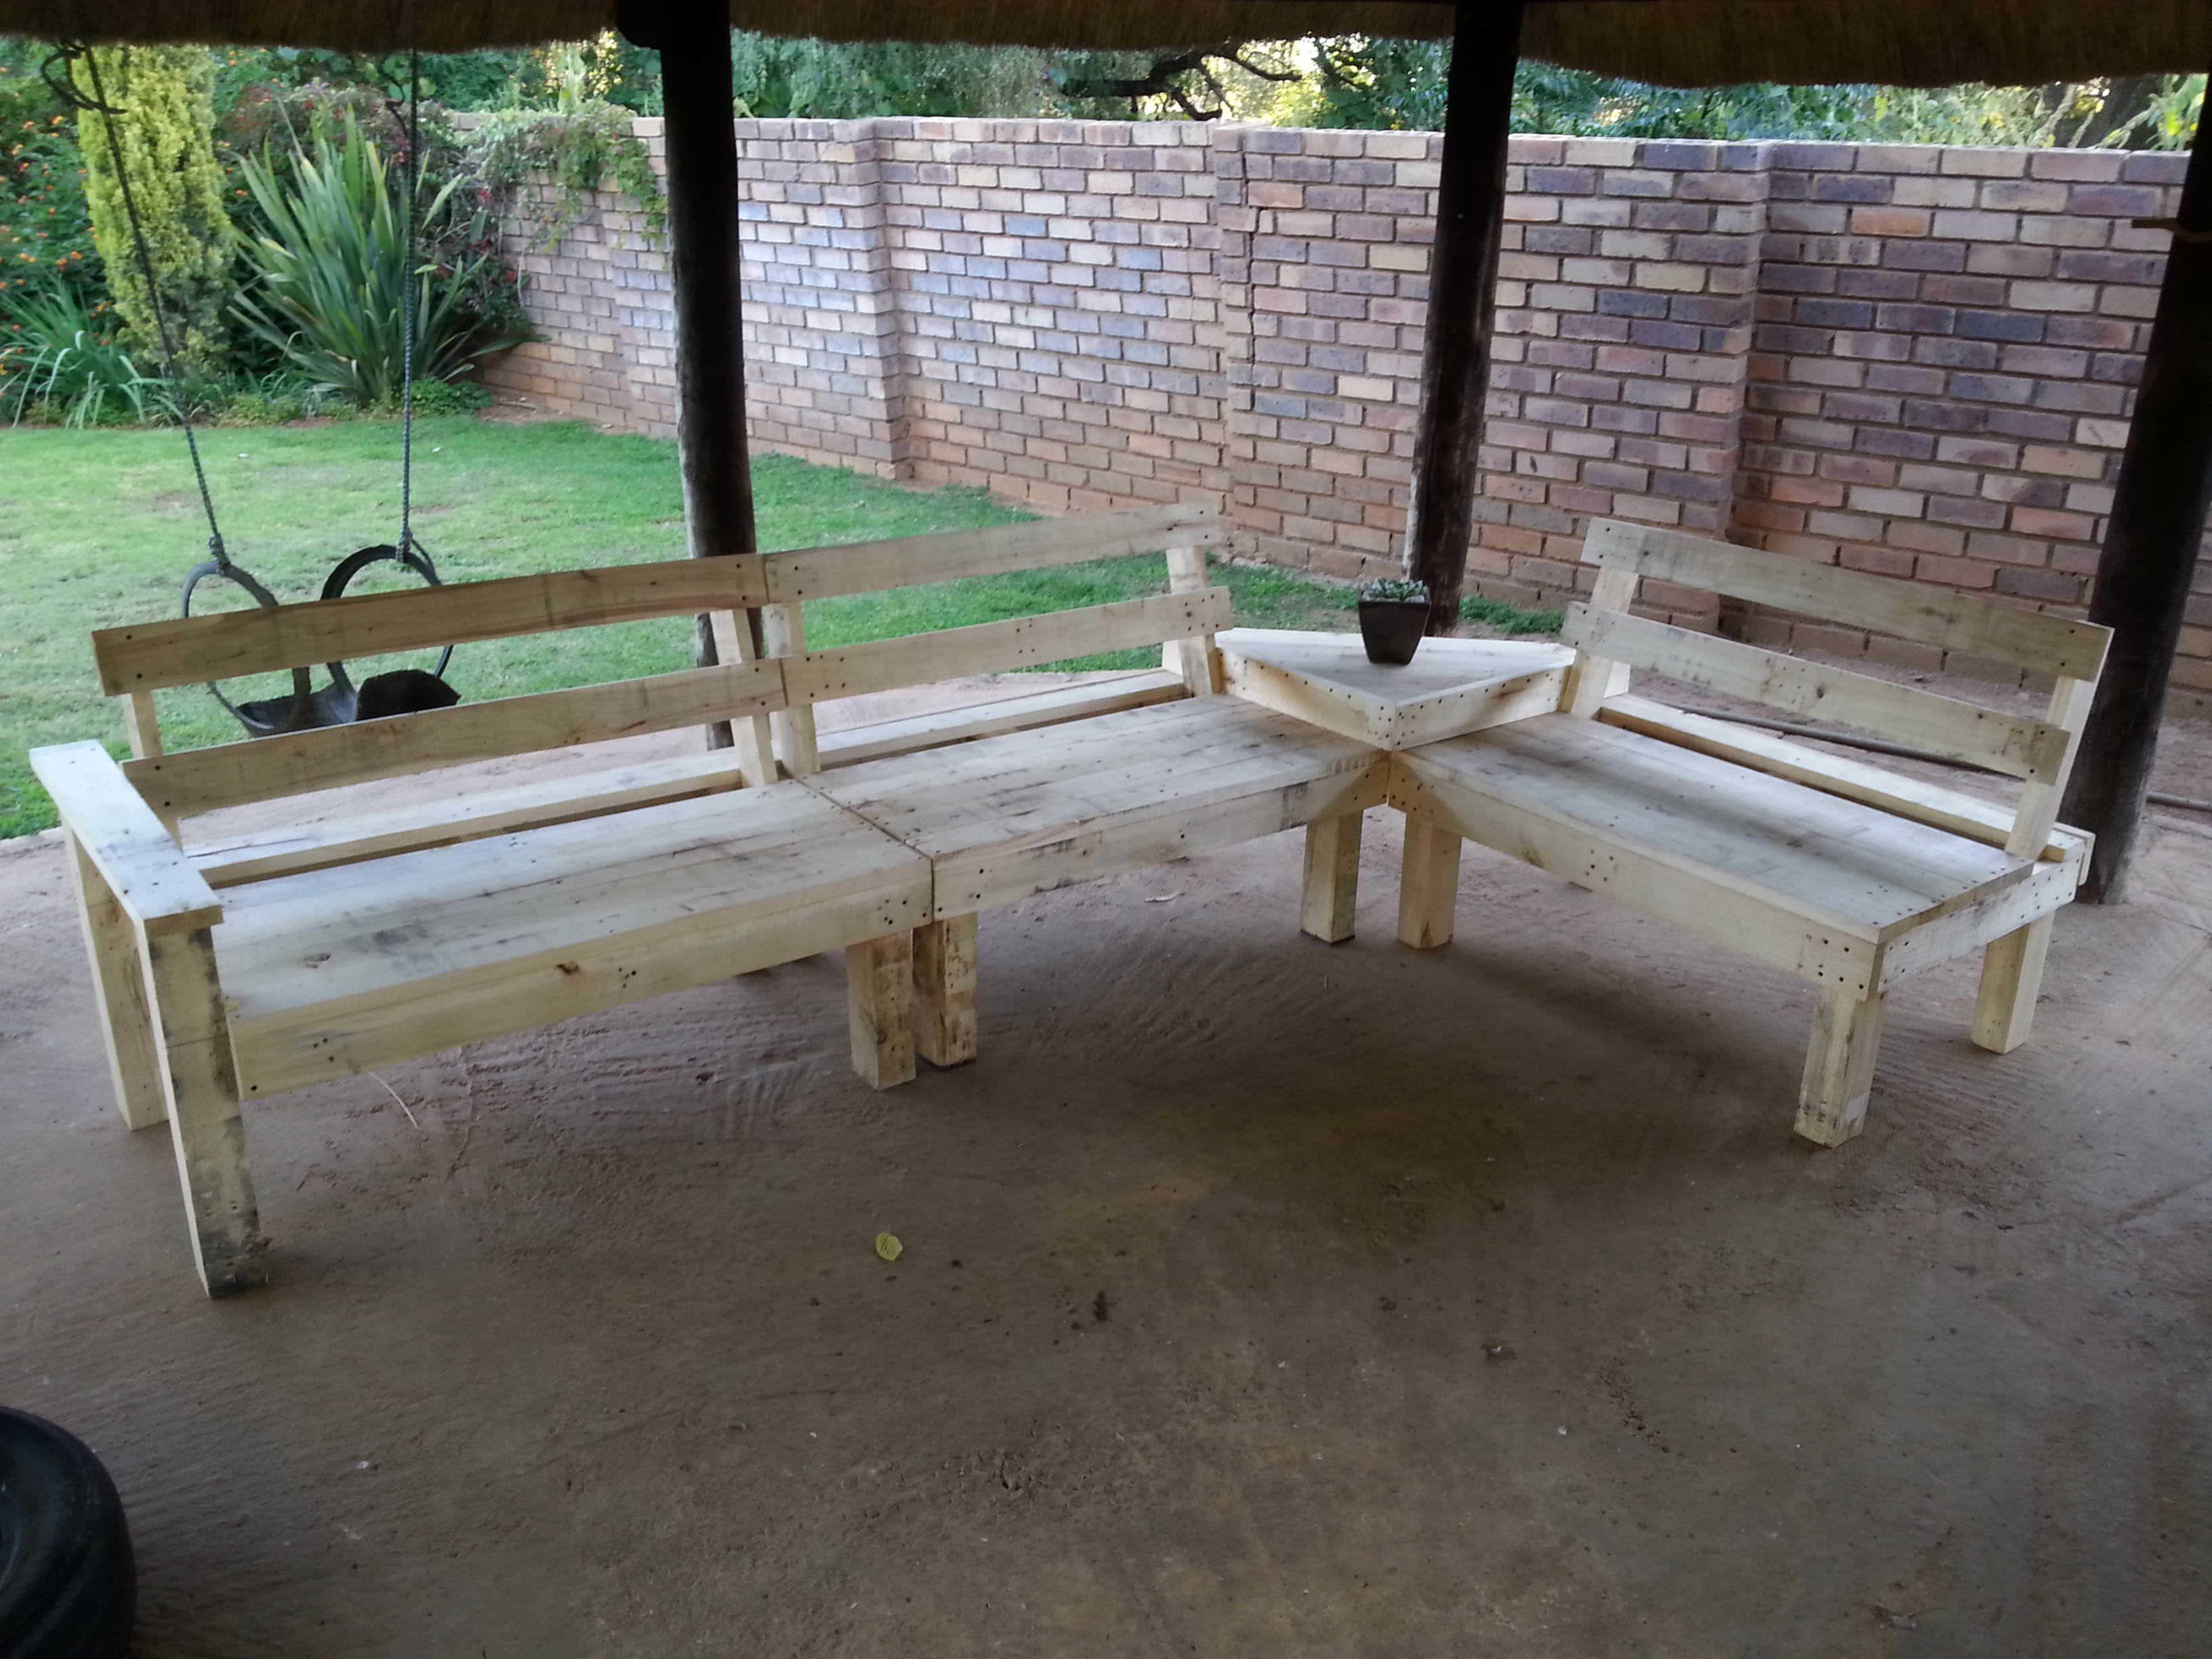 Amazing Pallet Lounge With Coffee Table My first try at pallet furniture's, an